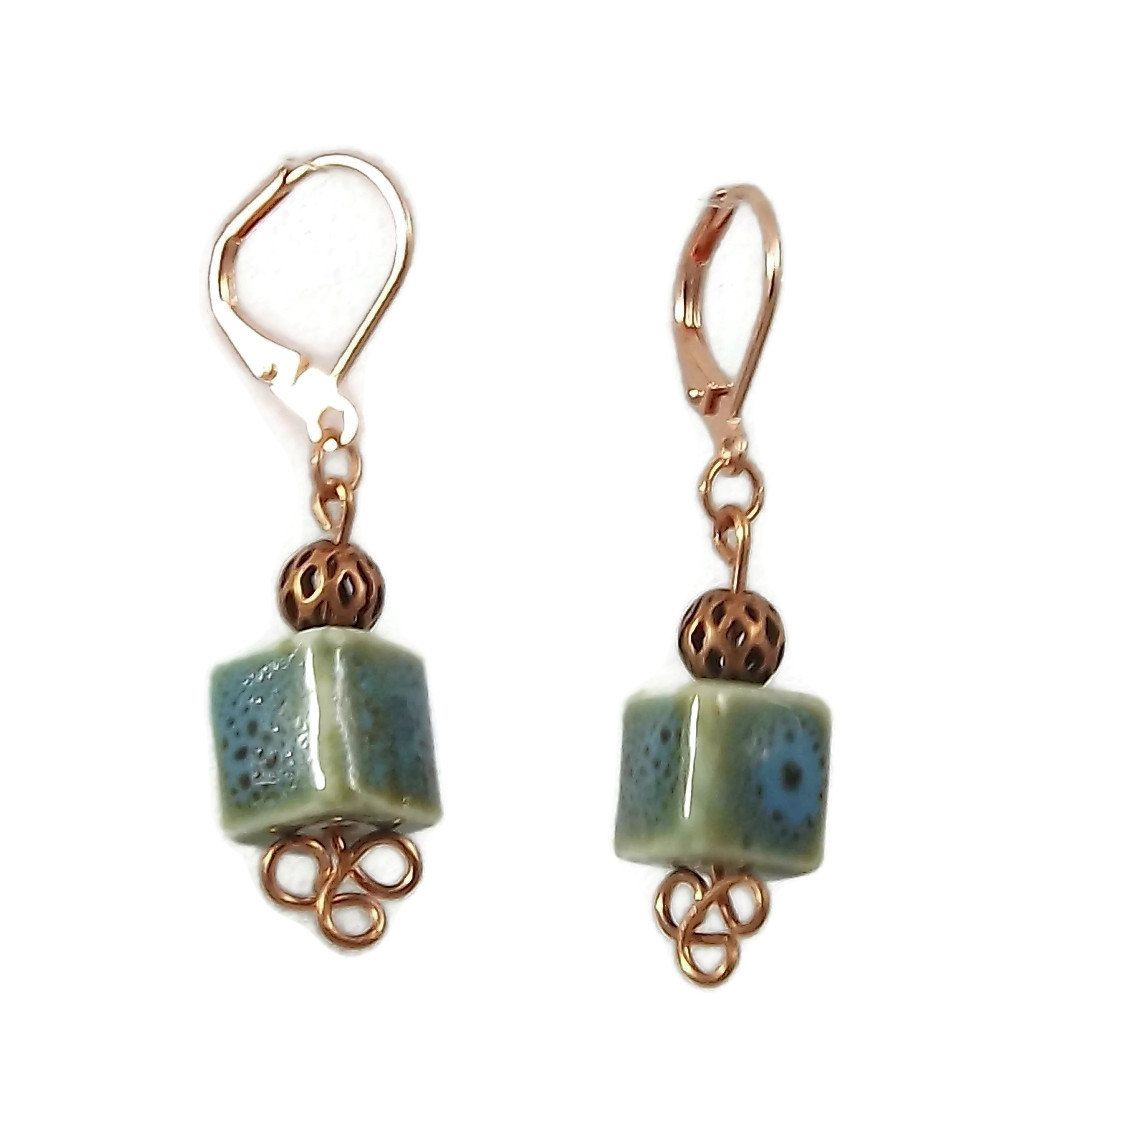 Handmade Copper Wire Earrings with teal and green square beads ...